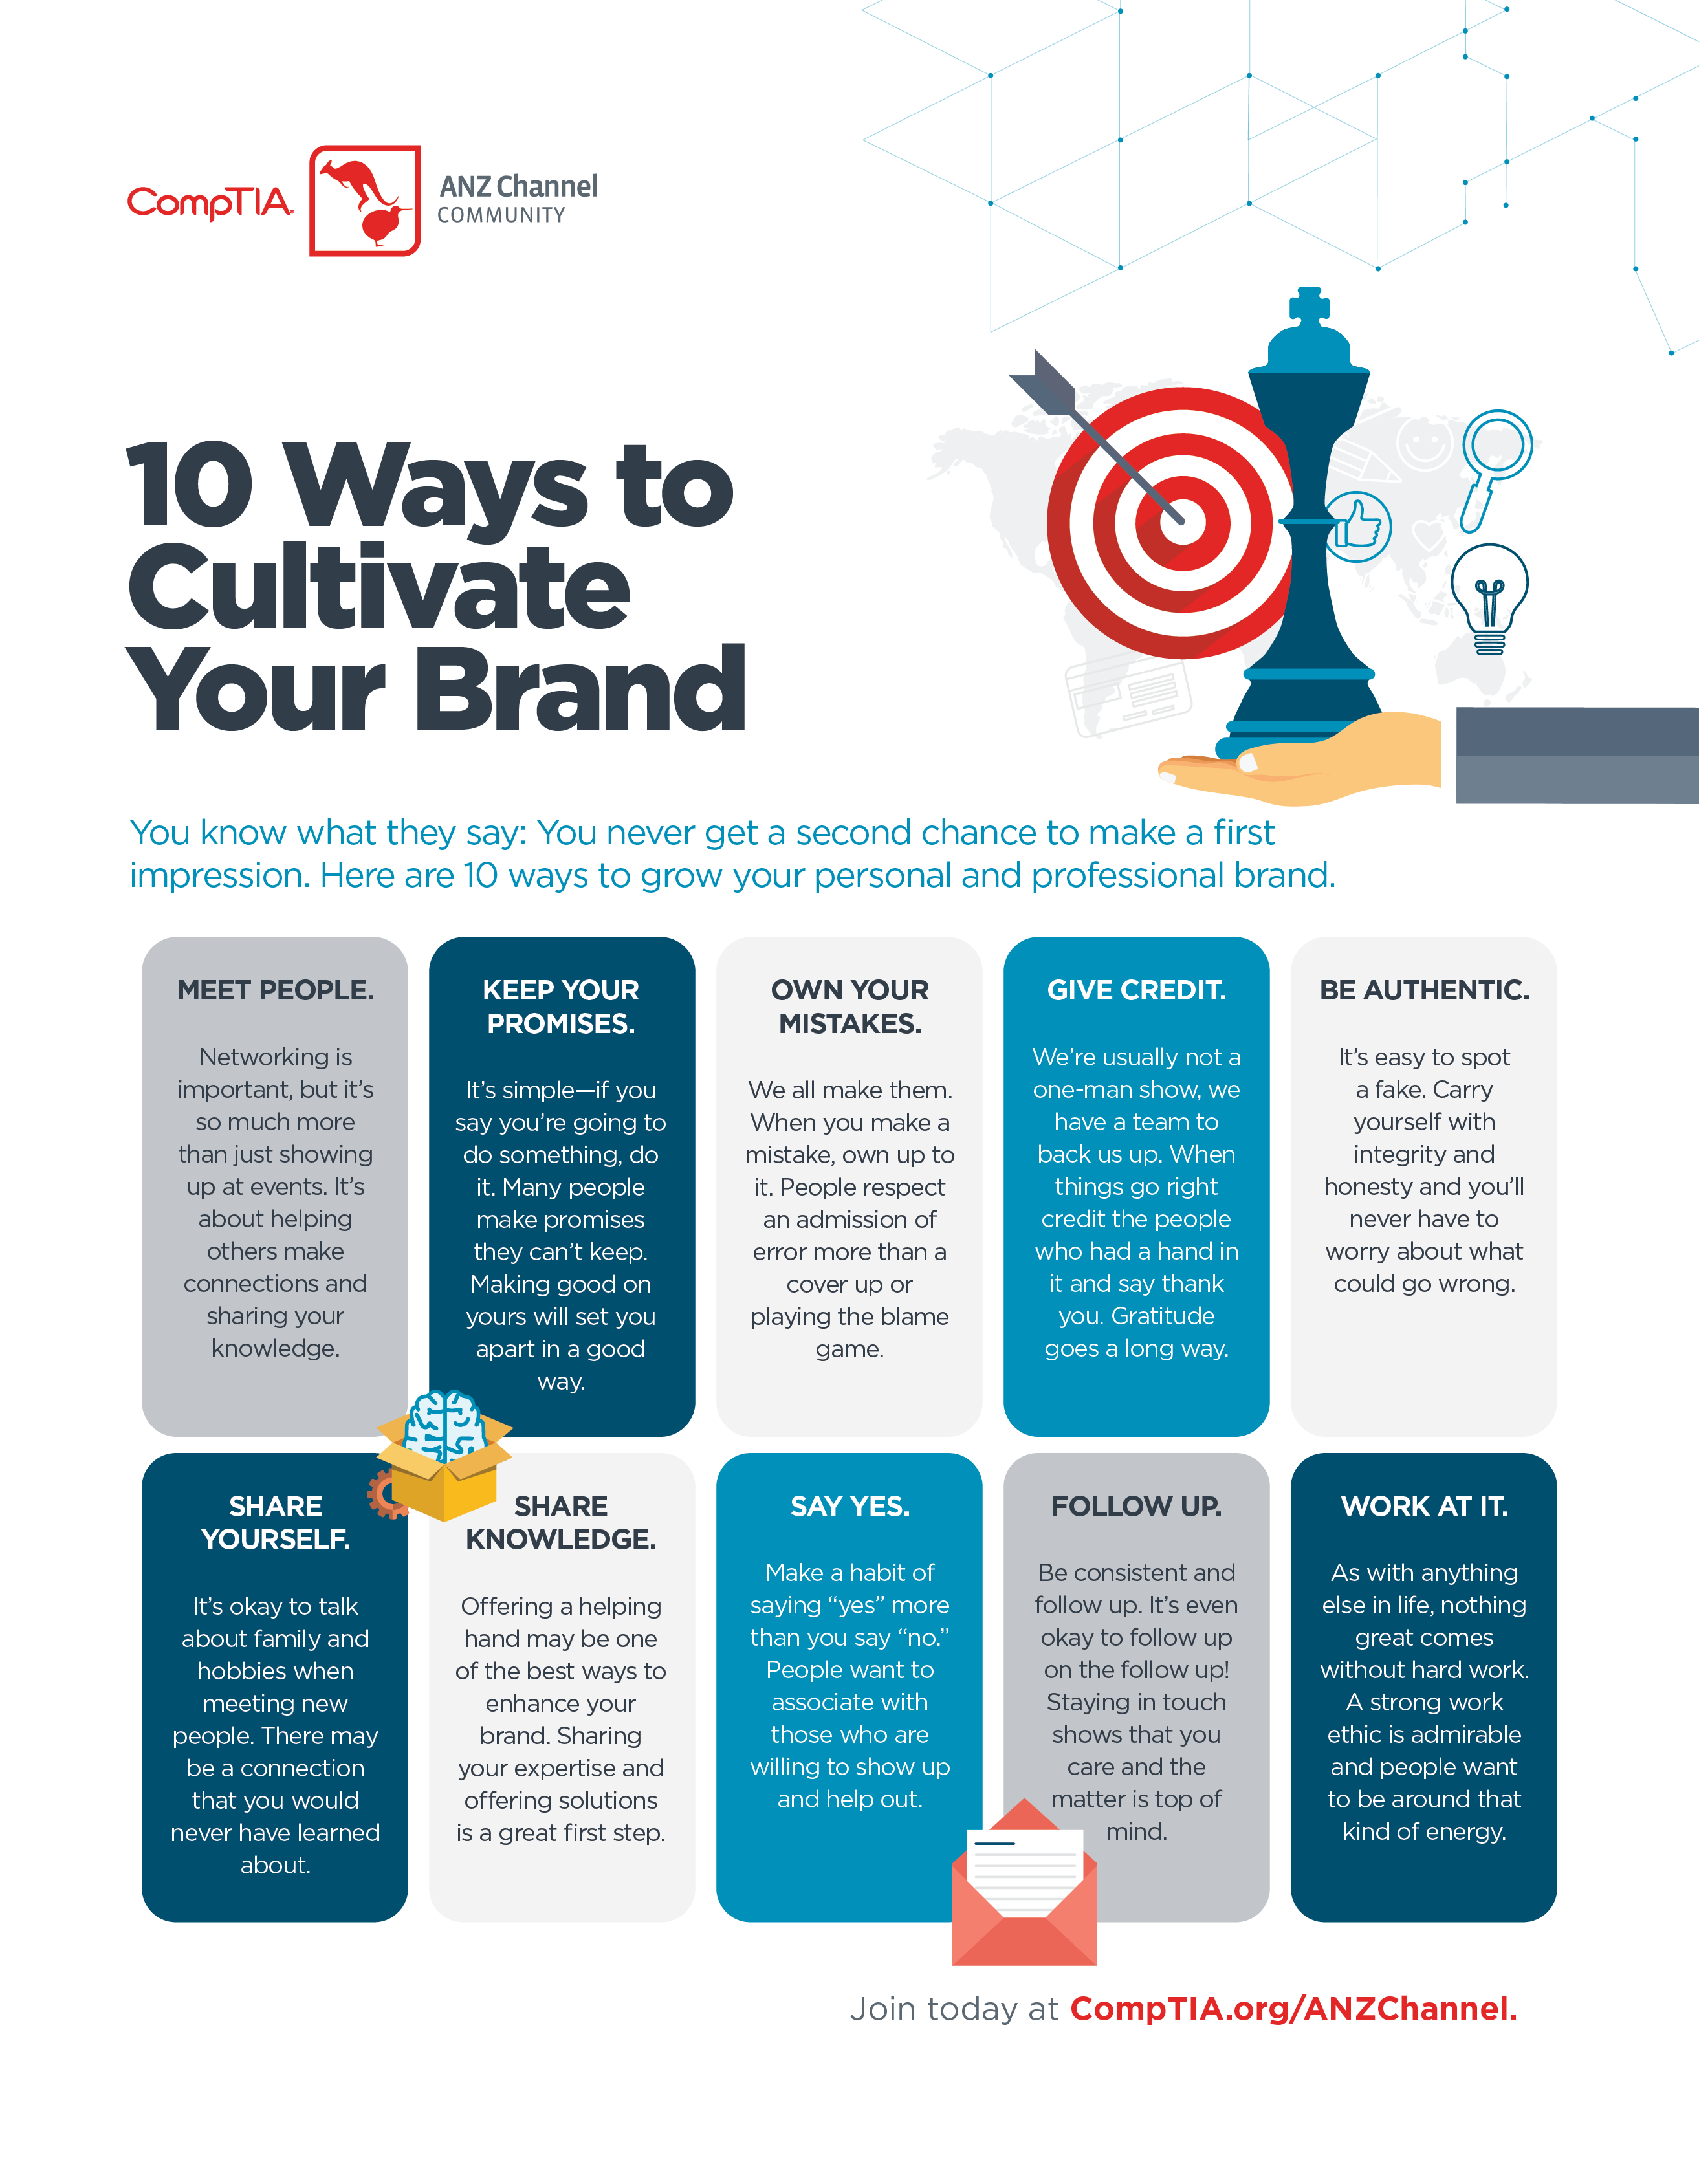 10 Ways to Cultivate Your Brand